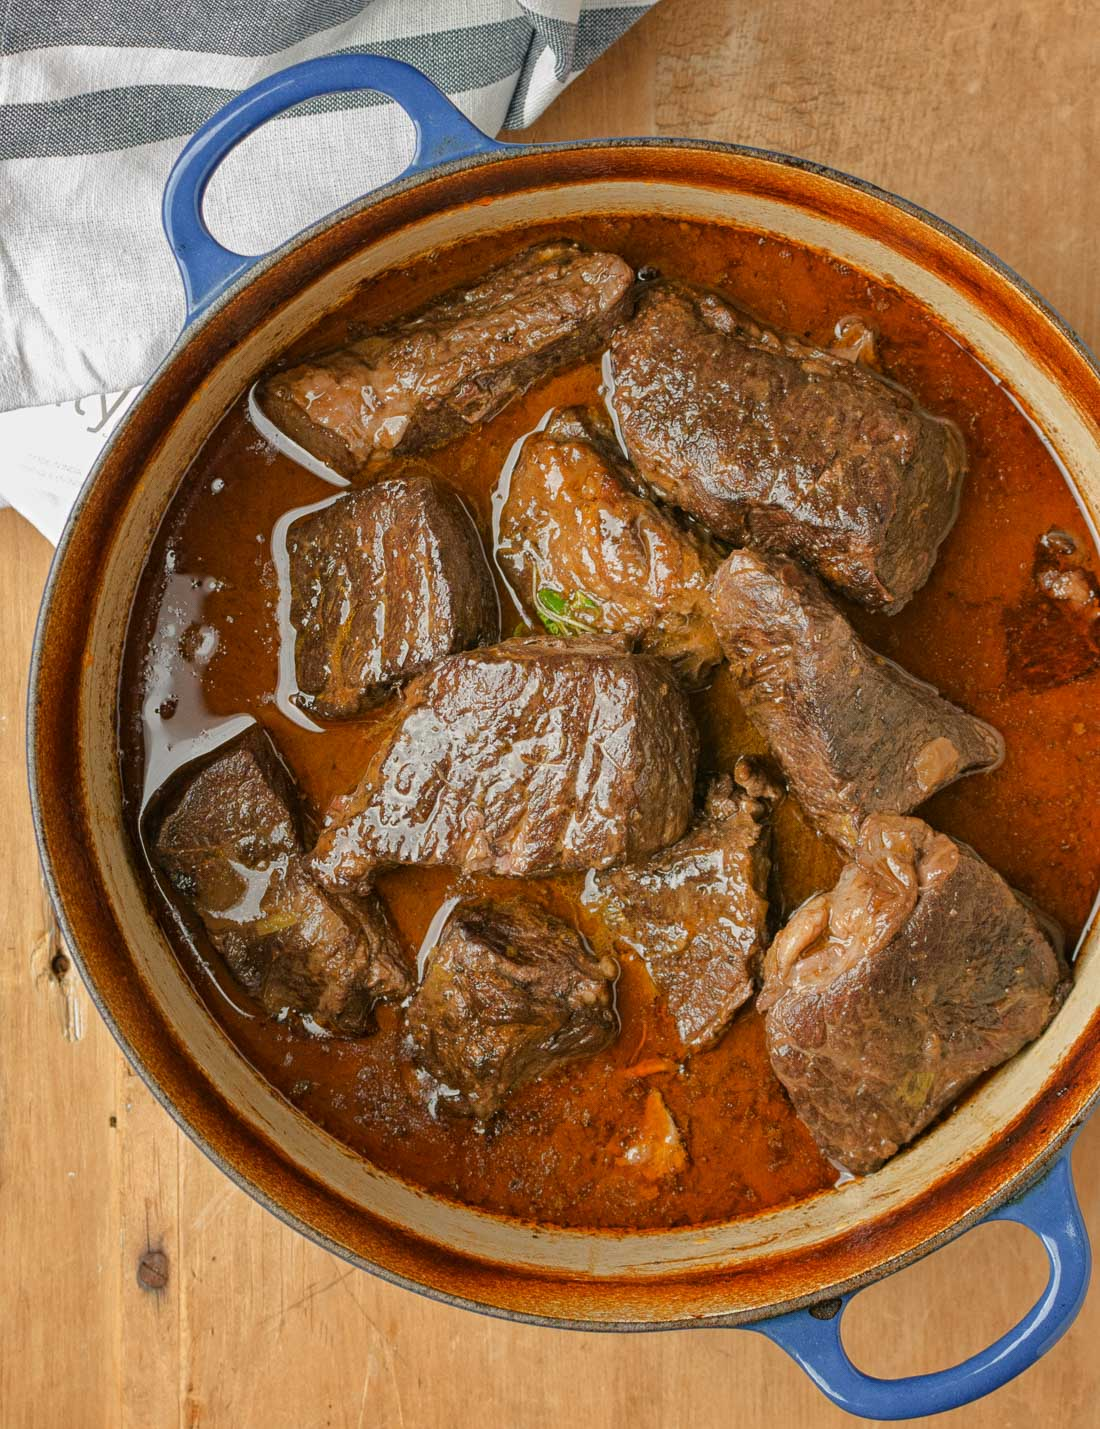 There's something unbelievably satisfying about braised short ribs. Brown them deeply, add wine, stock and a few aromatics and serve a spectacular dinner.